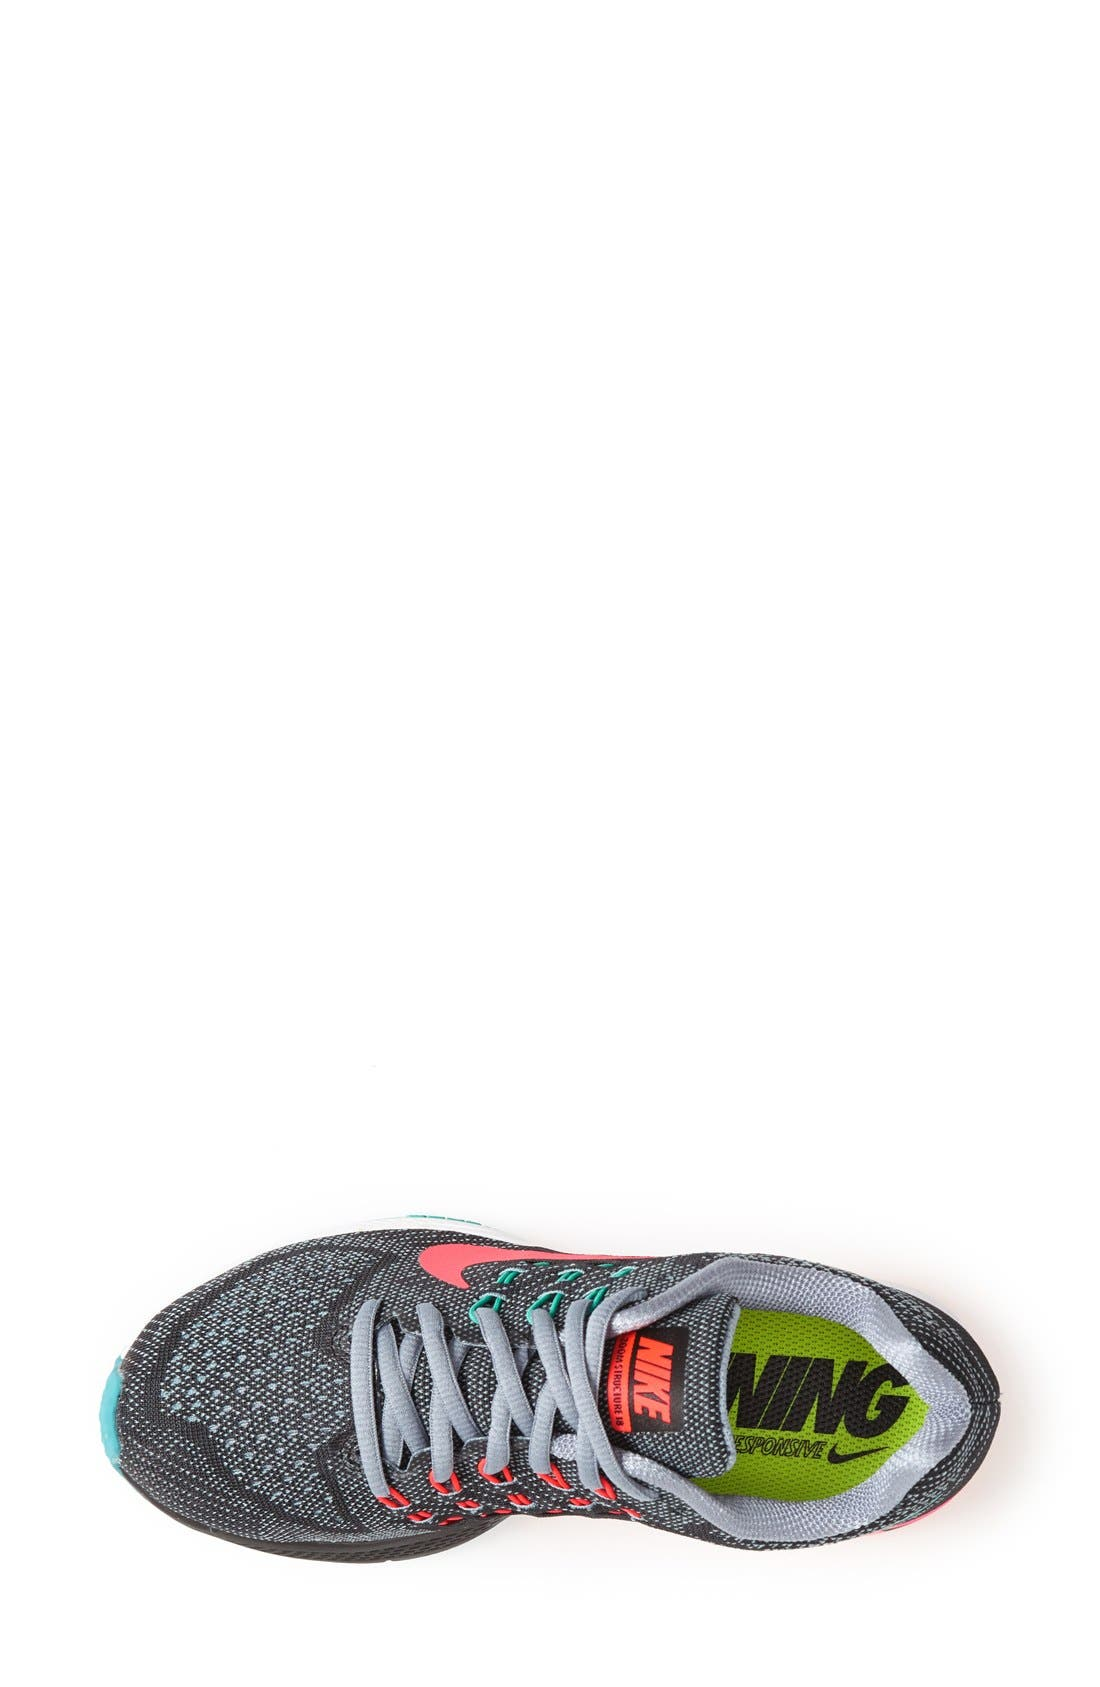 Alternate Image 3  - Nike 'Air Zoom Structure 18' Running Shoe (Wide) (Women)